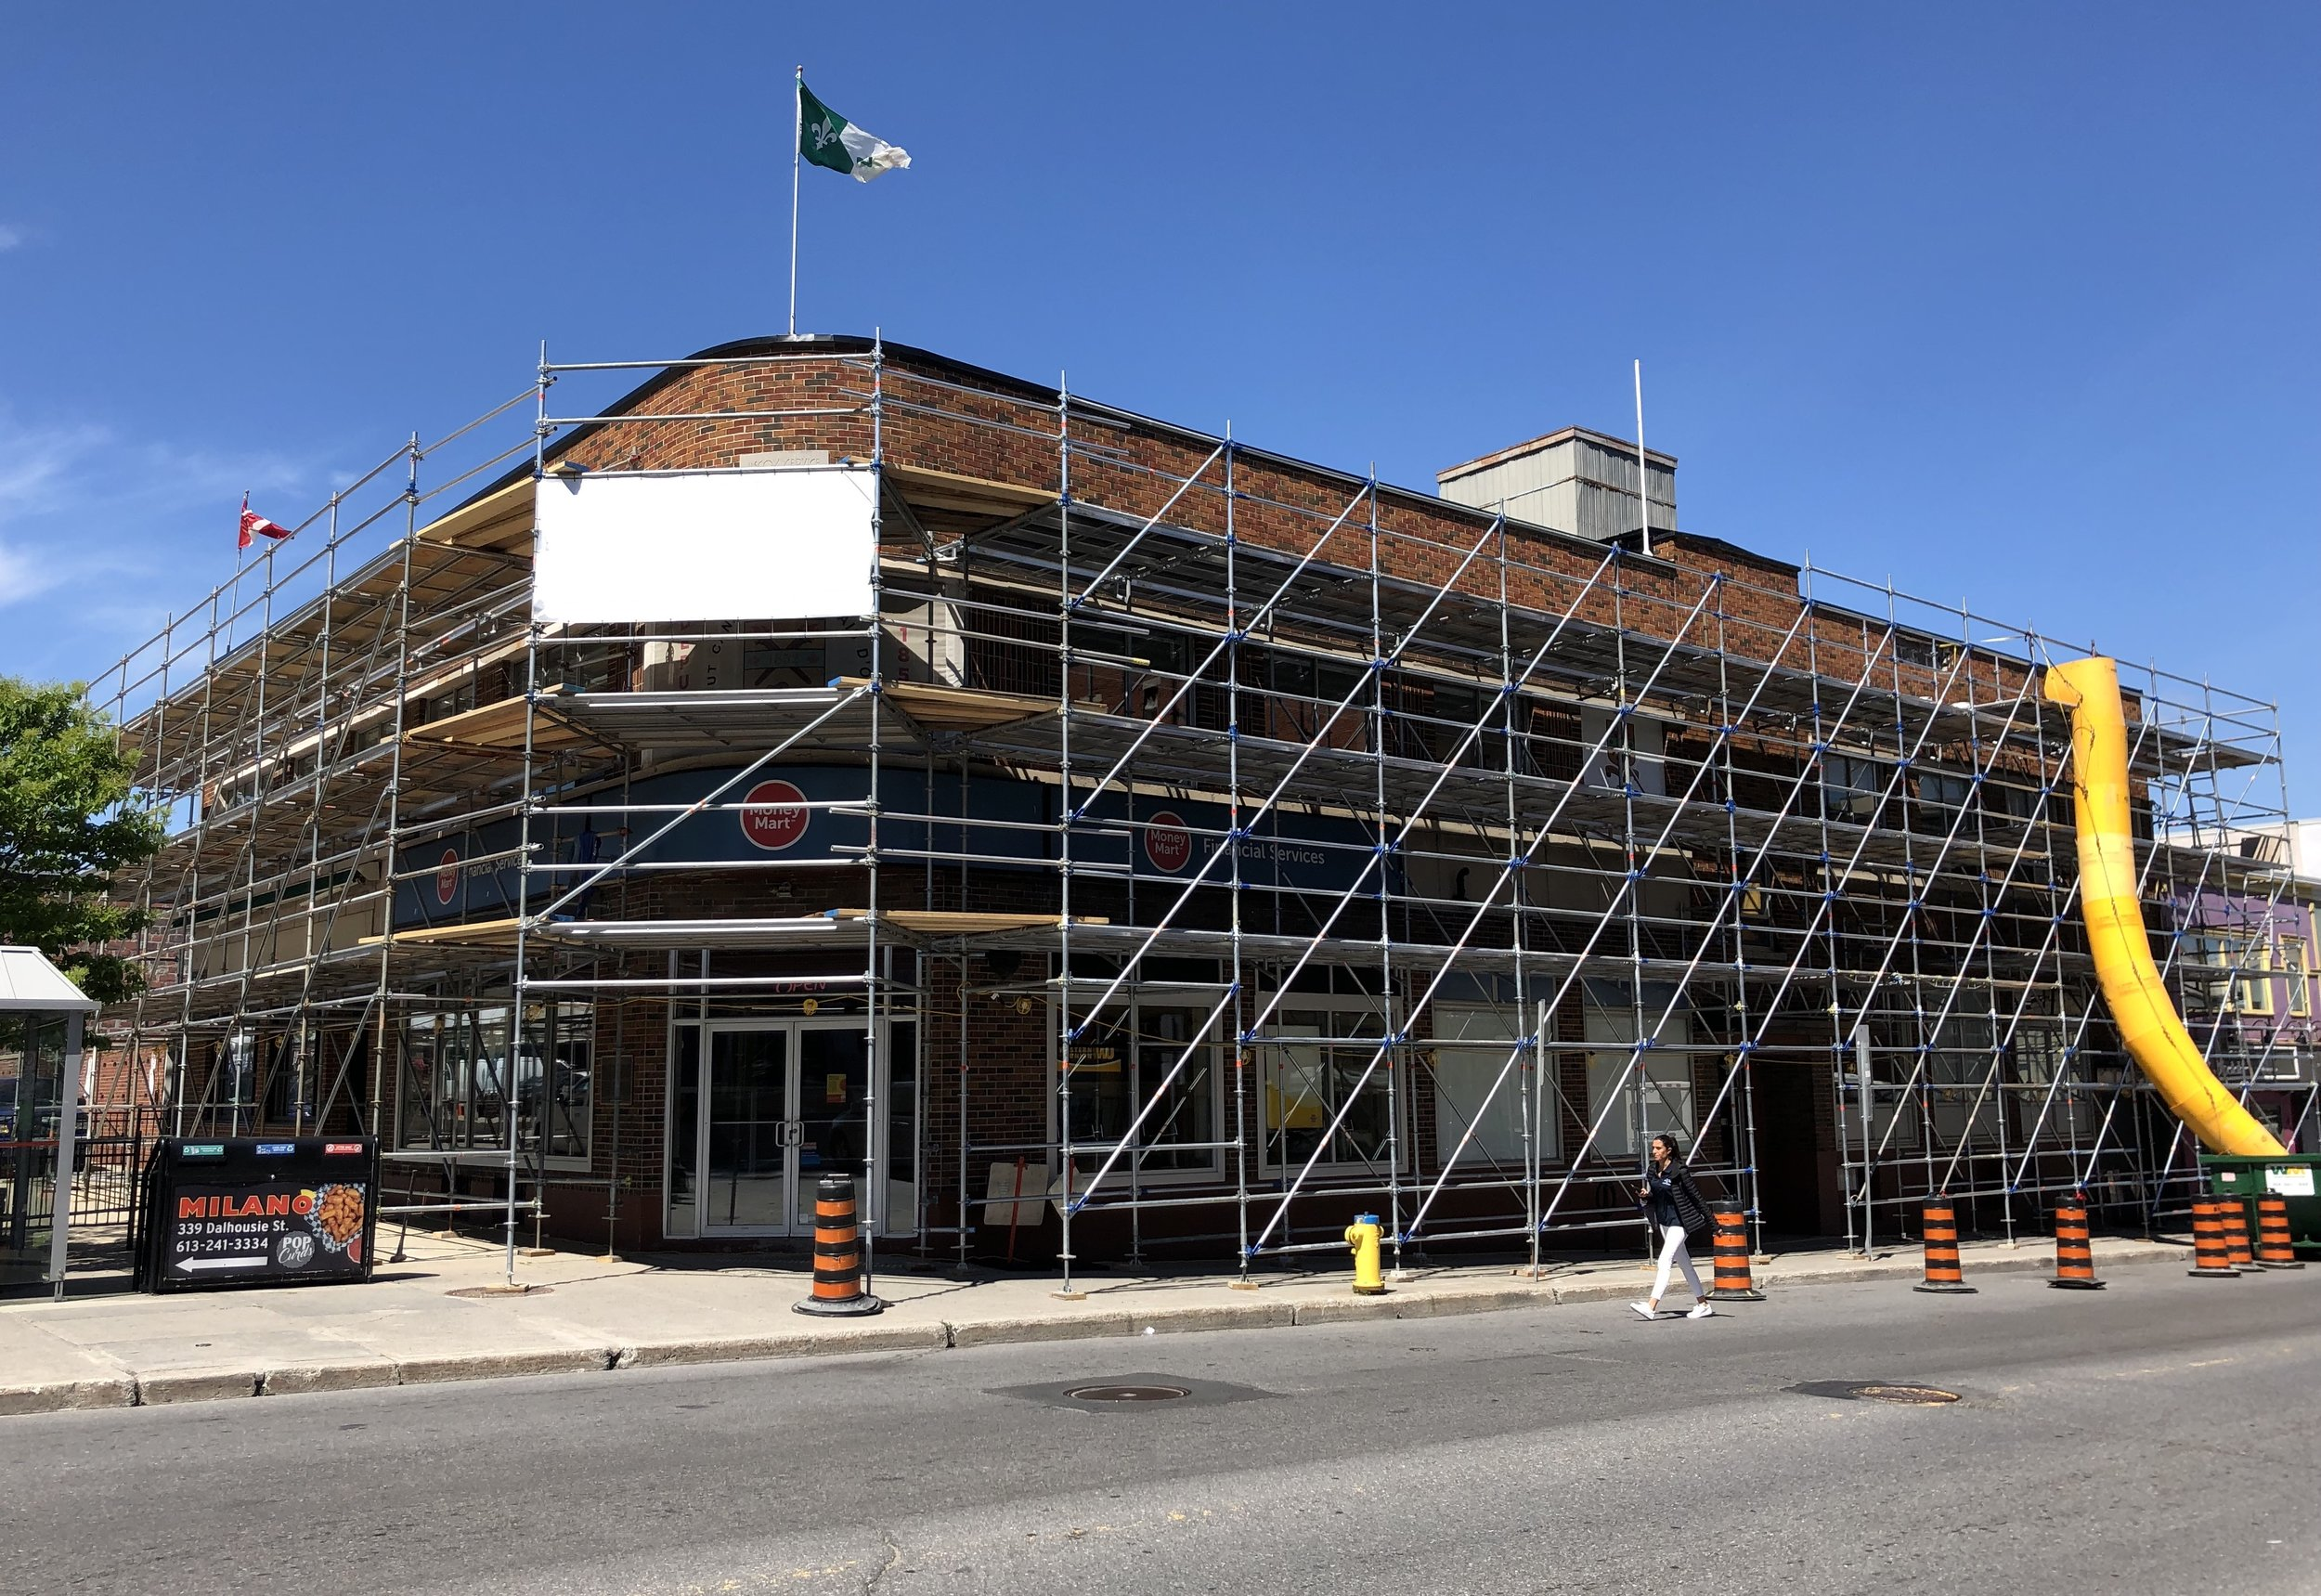 Dalhousie Street - Building Restoration in Progress